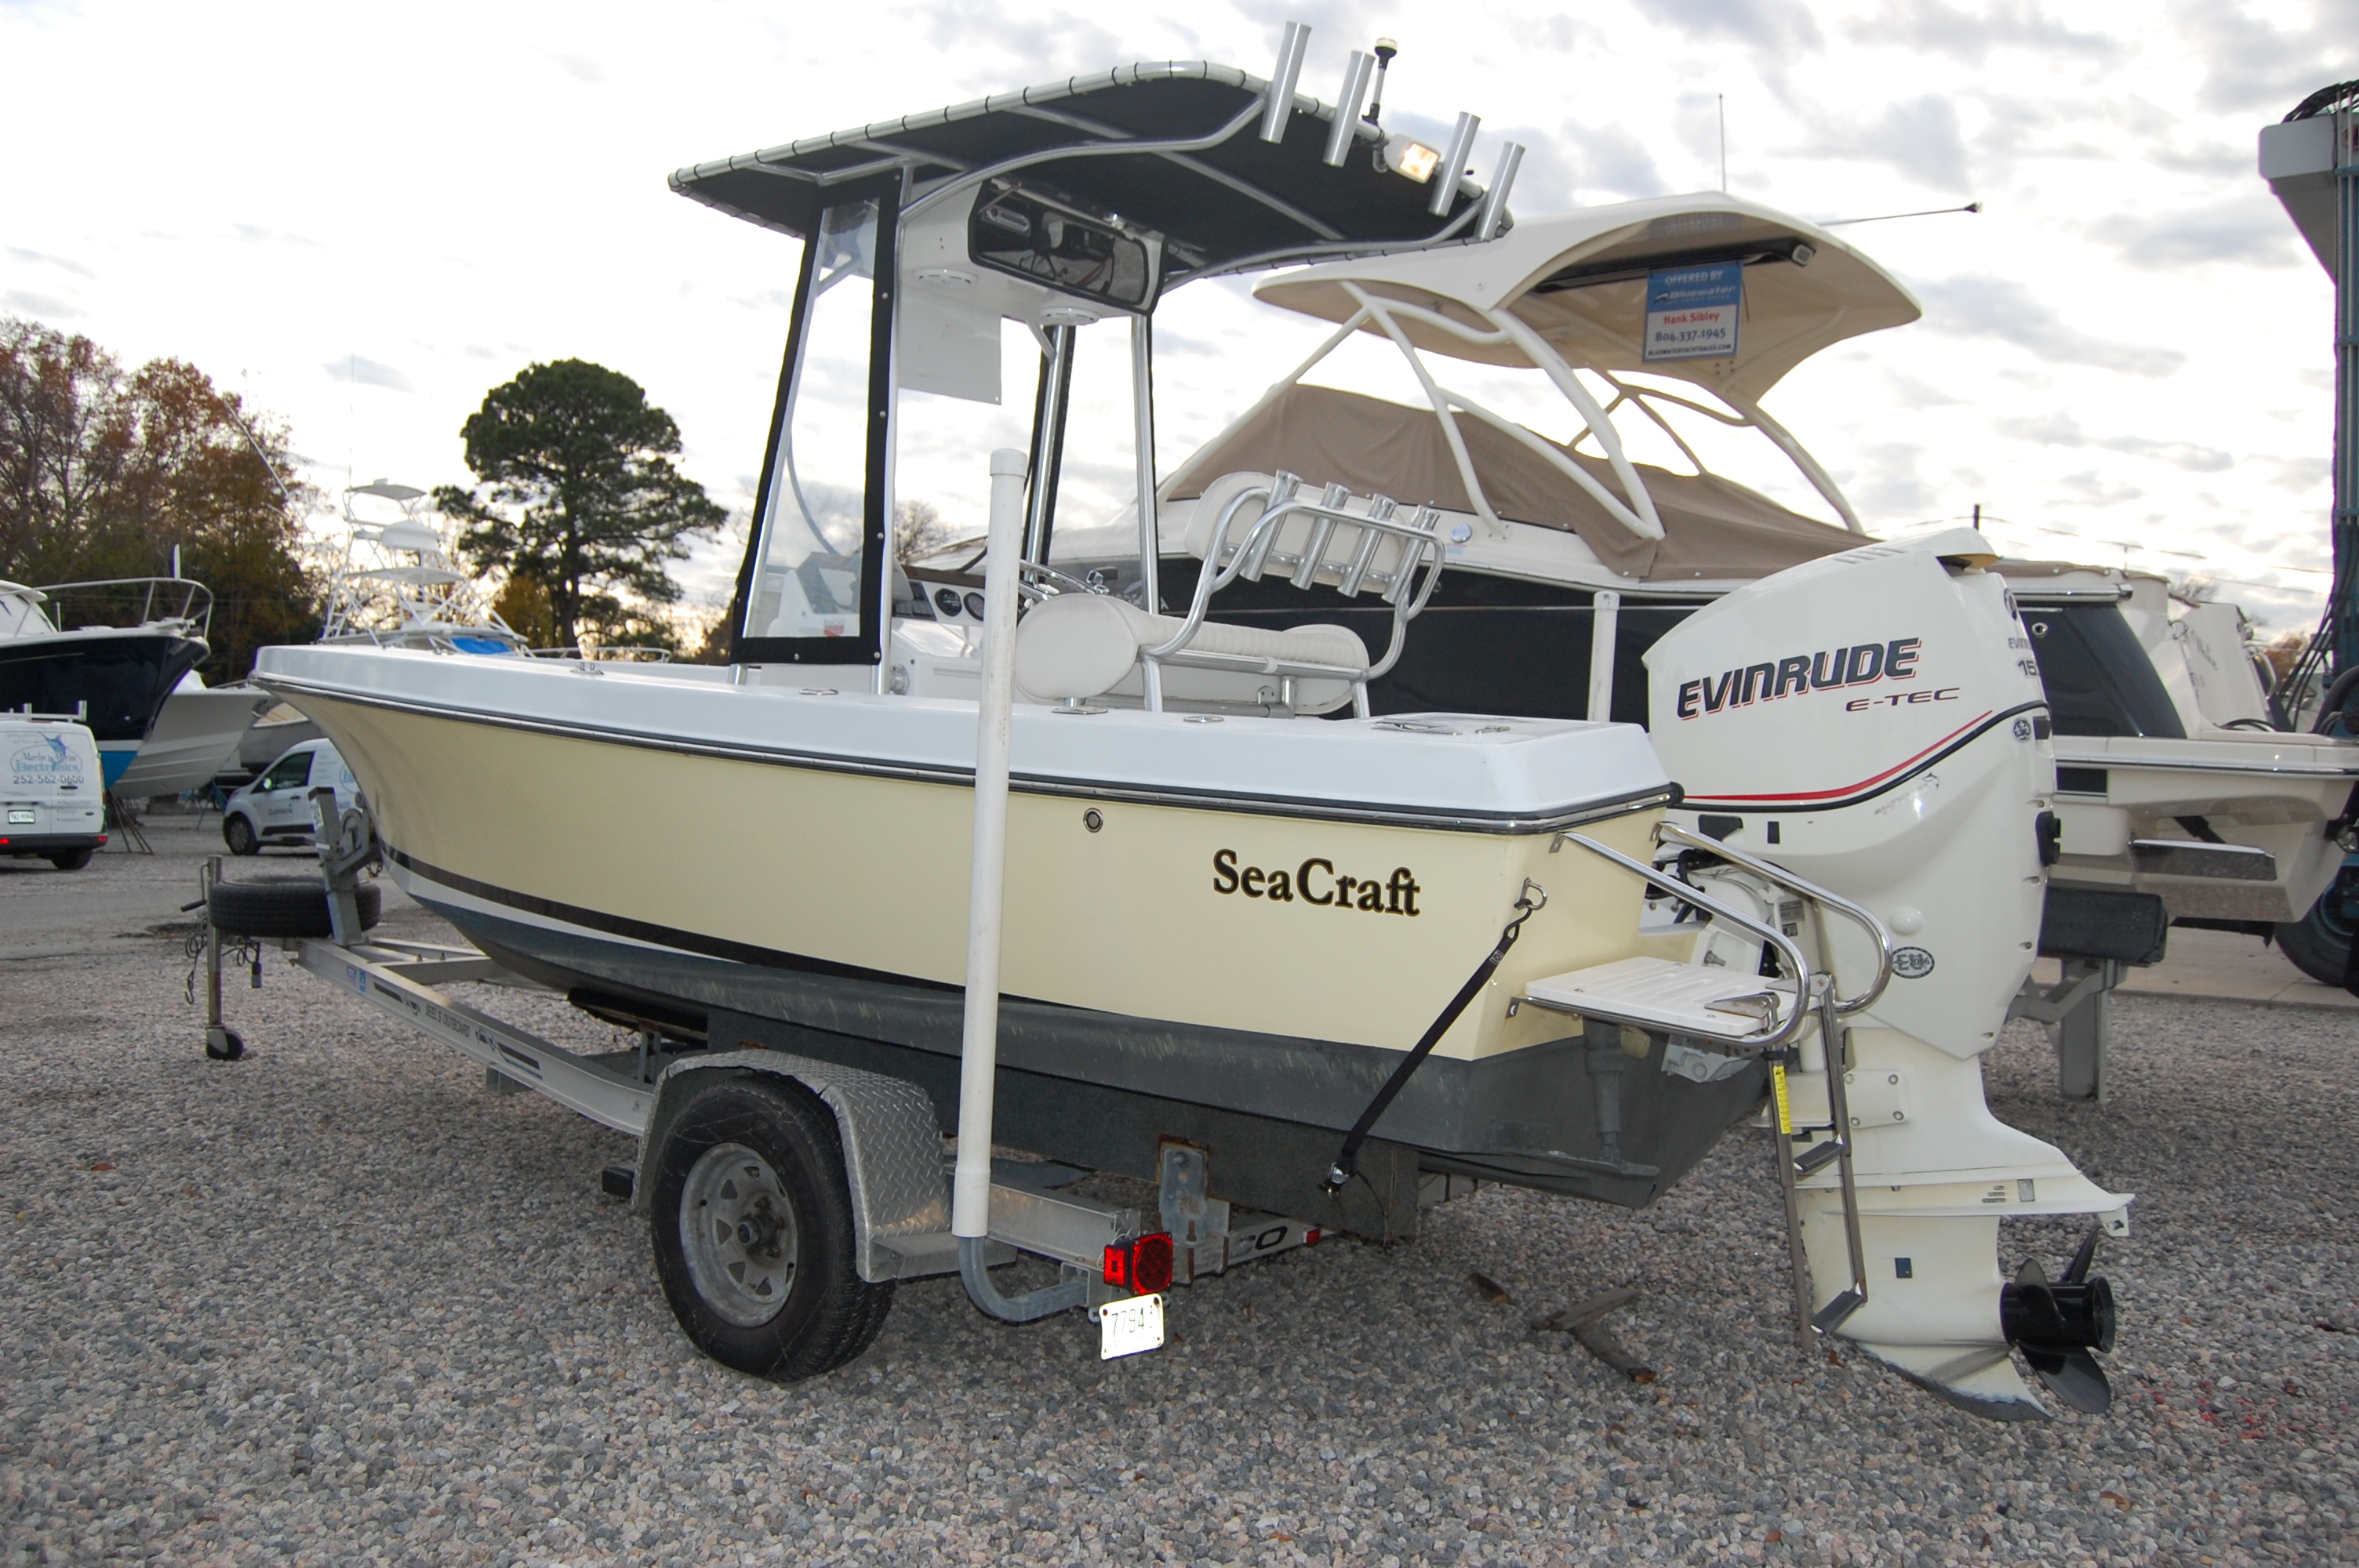 SeaCraft 20 CENTER CONSOLE Classic SeaCraft 20', port stern on trailer